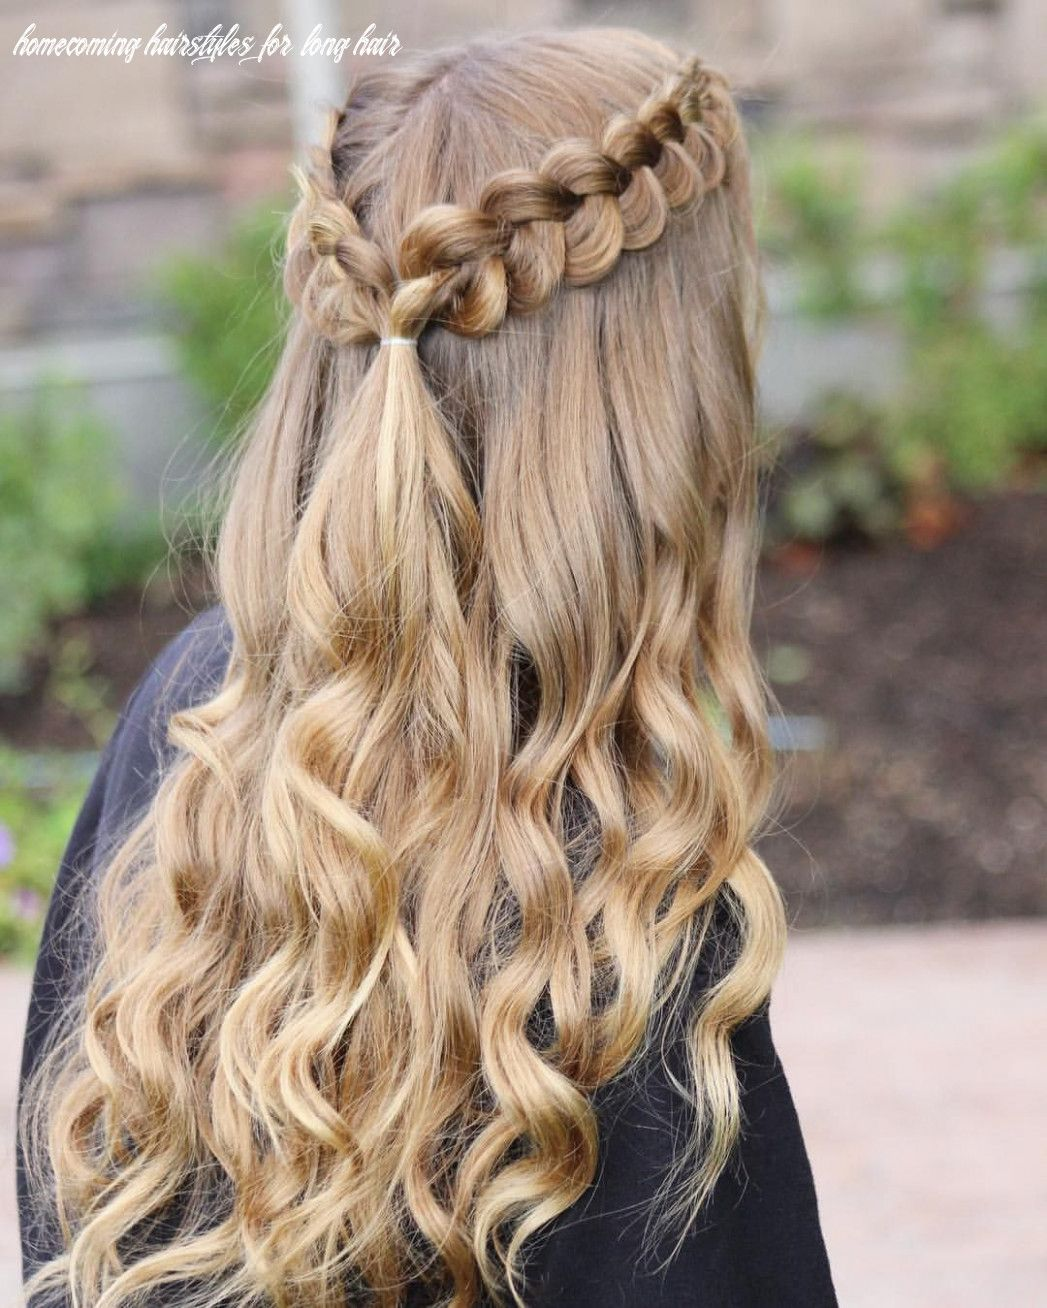 12 Homecoming Hairstyles For Long Hair In 2020 Prom Hairstyles For Long Hair Simple Prom Hair Hair Styles